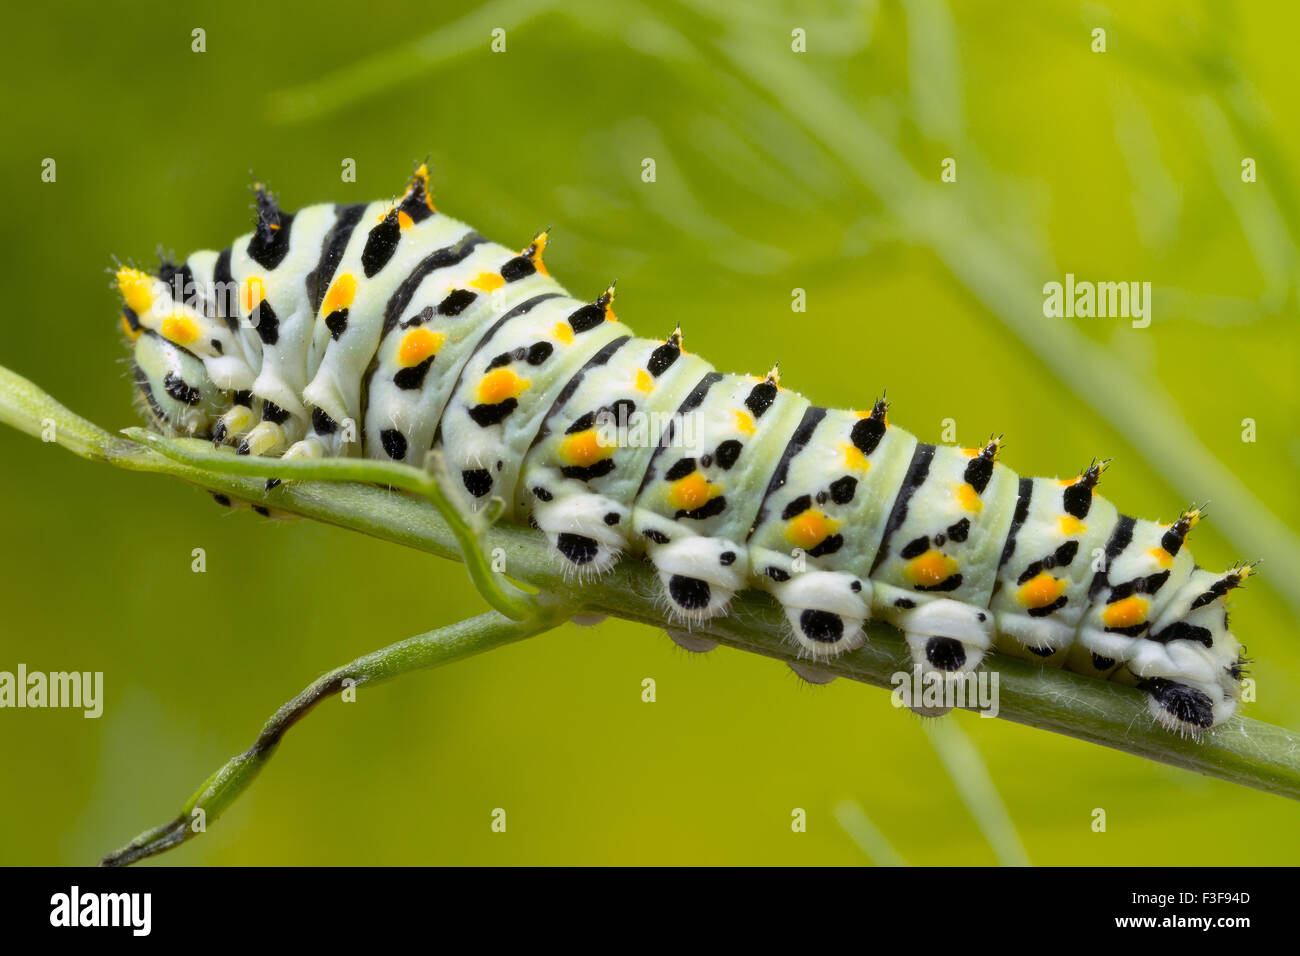 Swallowtail Catrepillar, 6 days after hatching and about 20mm in length. - Stock Image